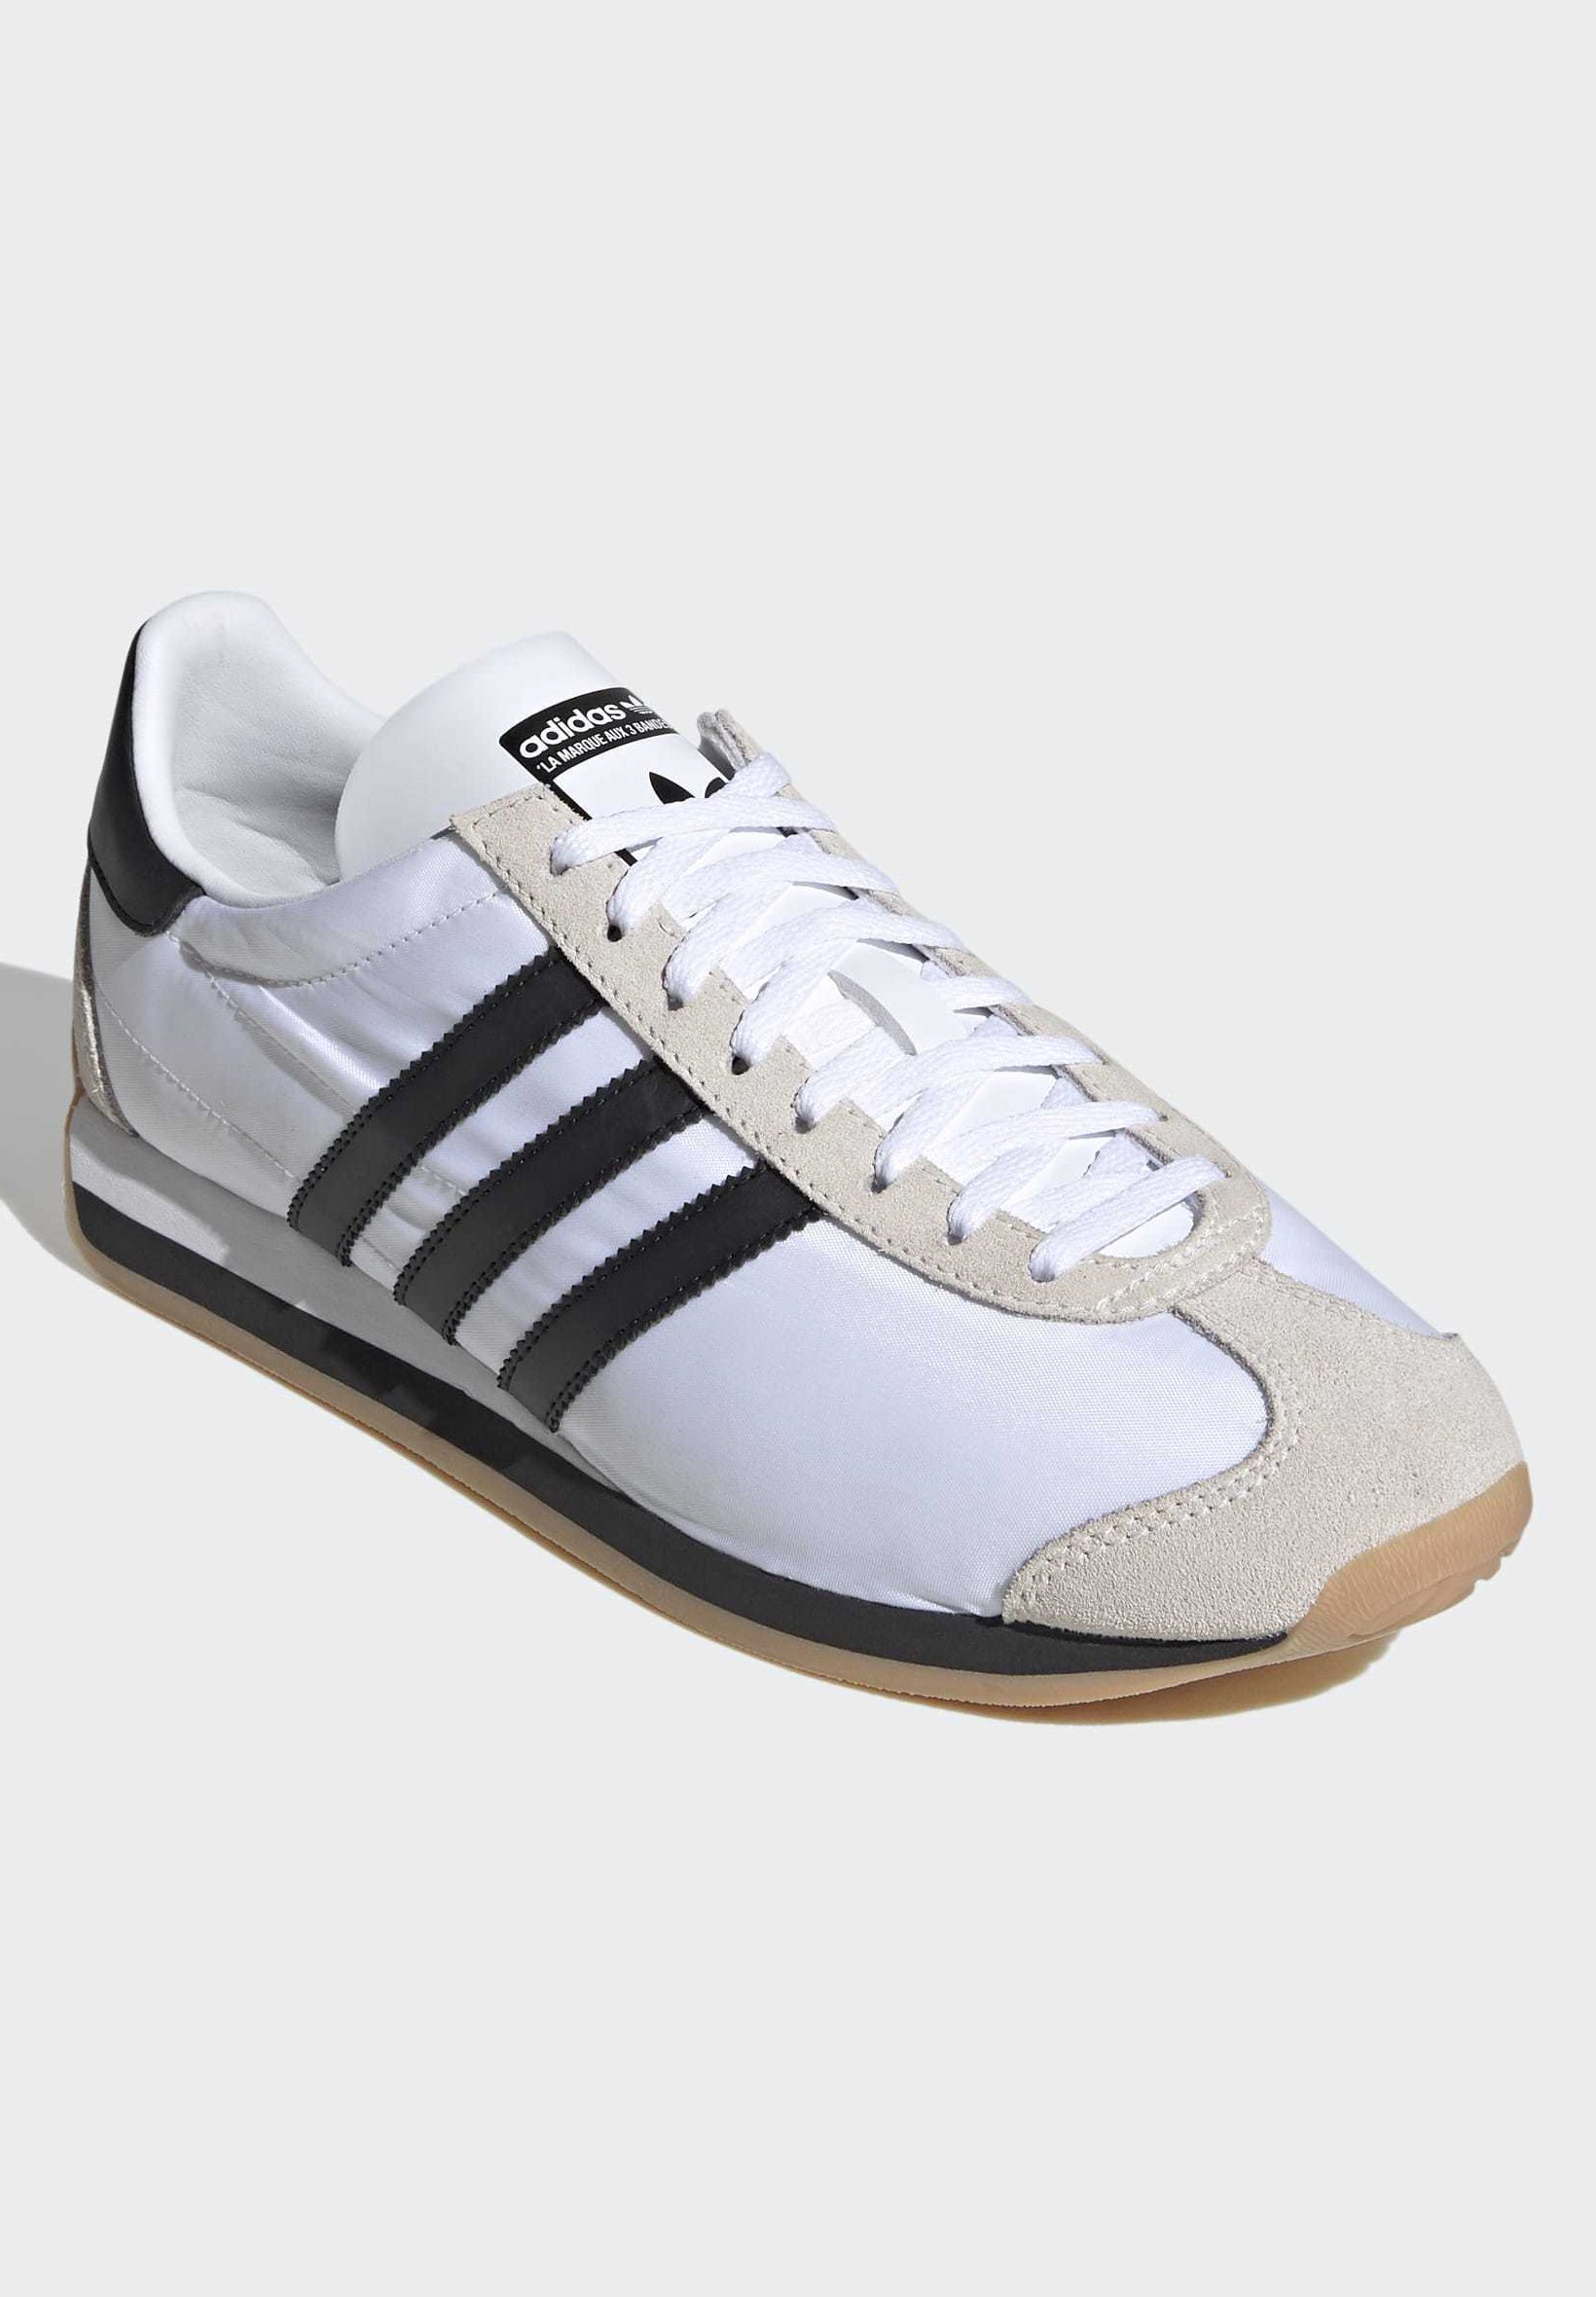 adidas country homme chaussures